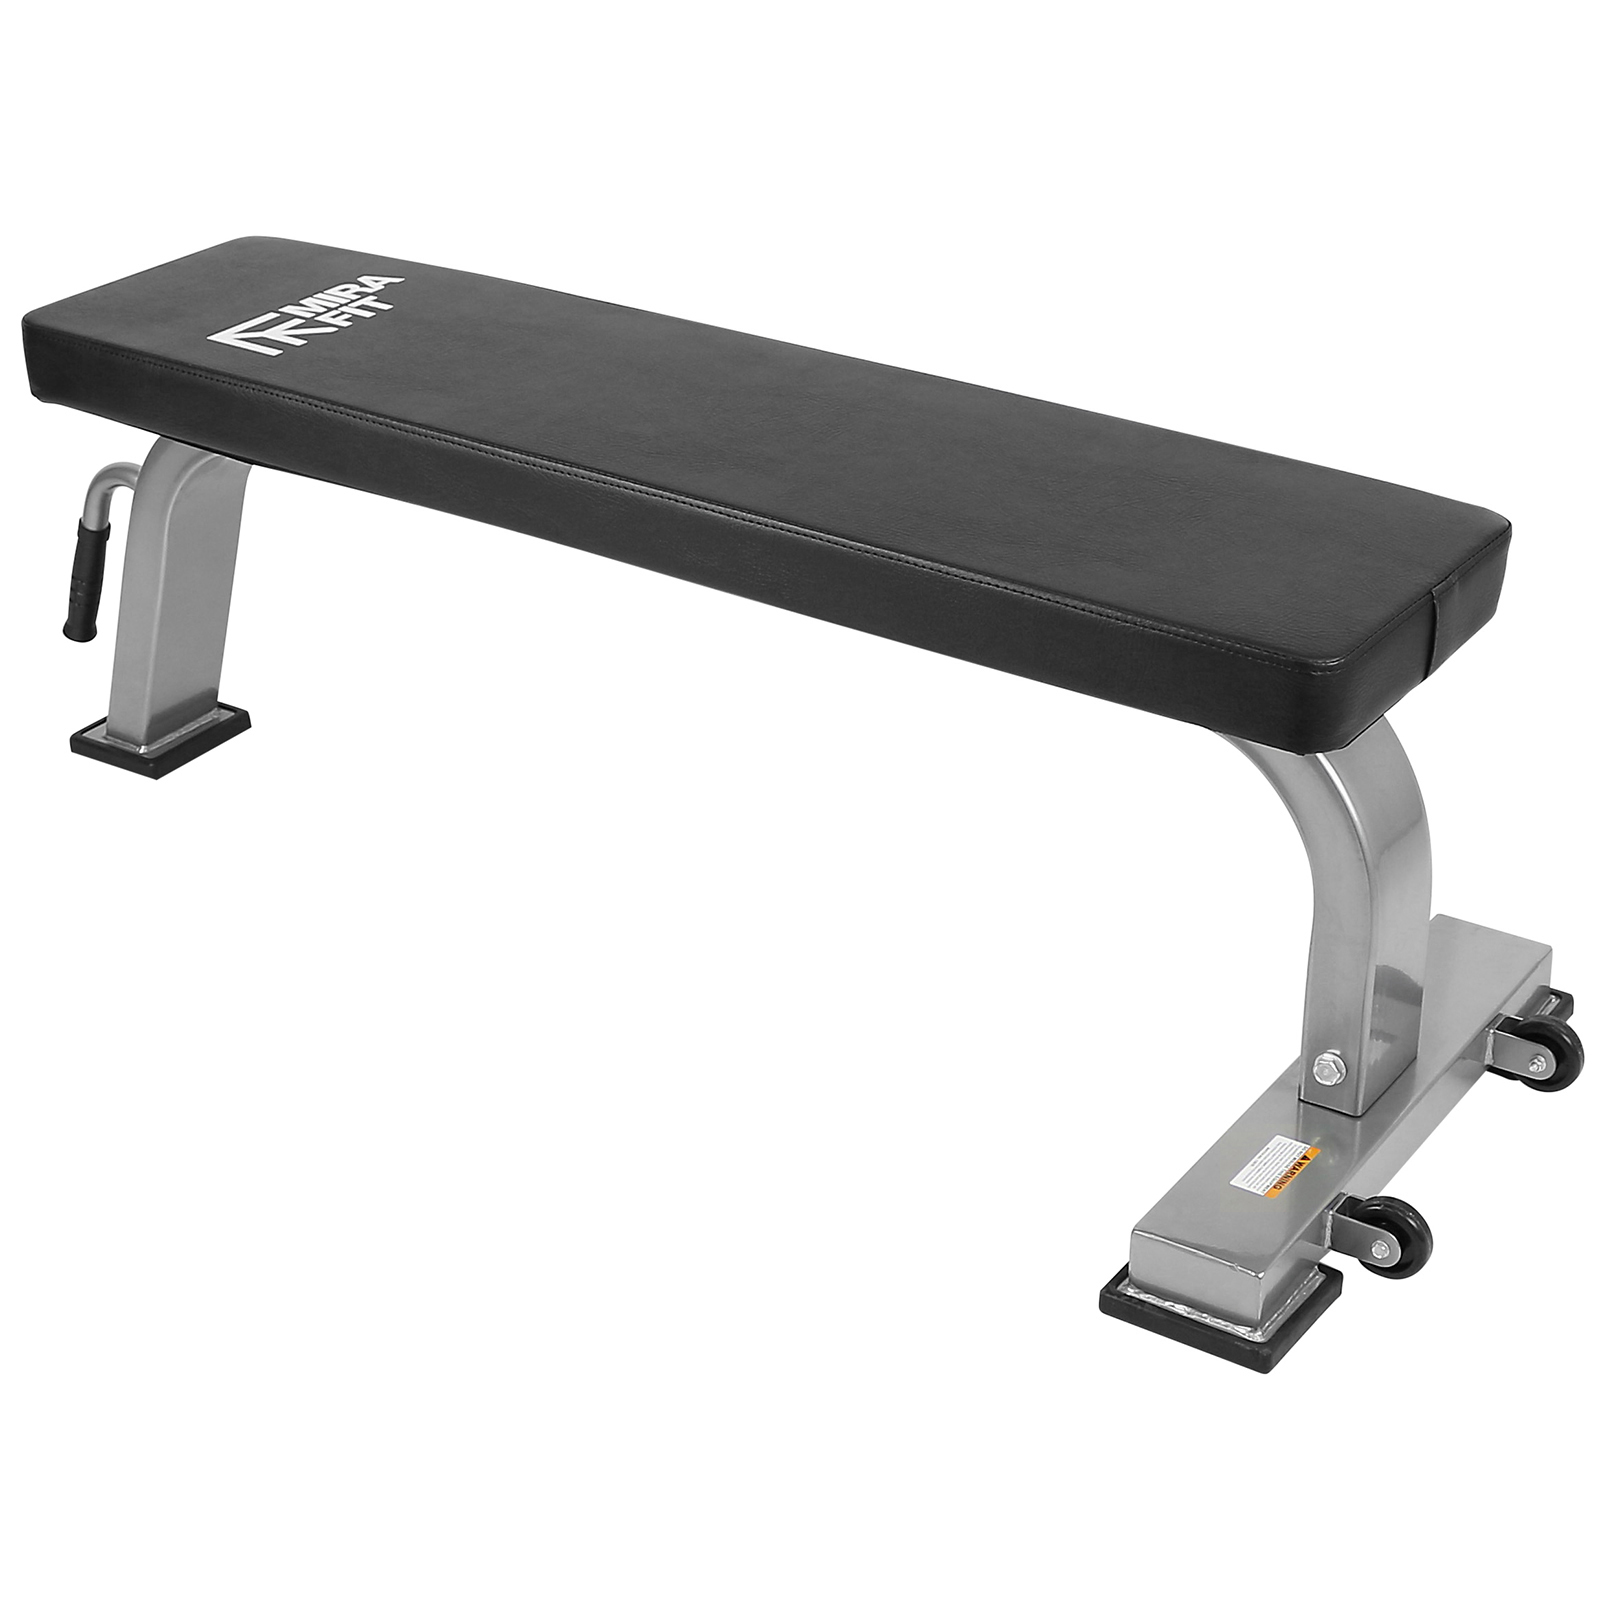 MIRAFIT Semi Commercial Flat Gym Bench Weight/Dumbbell/DB ...